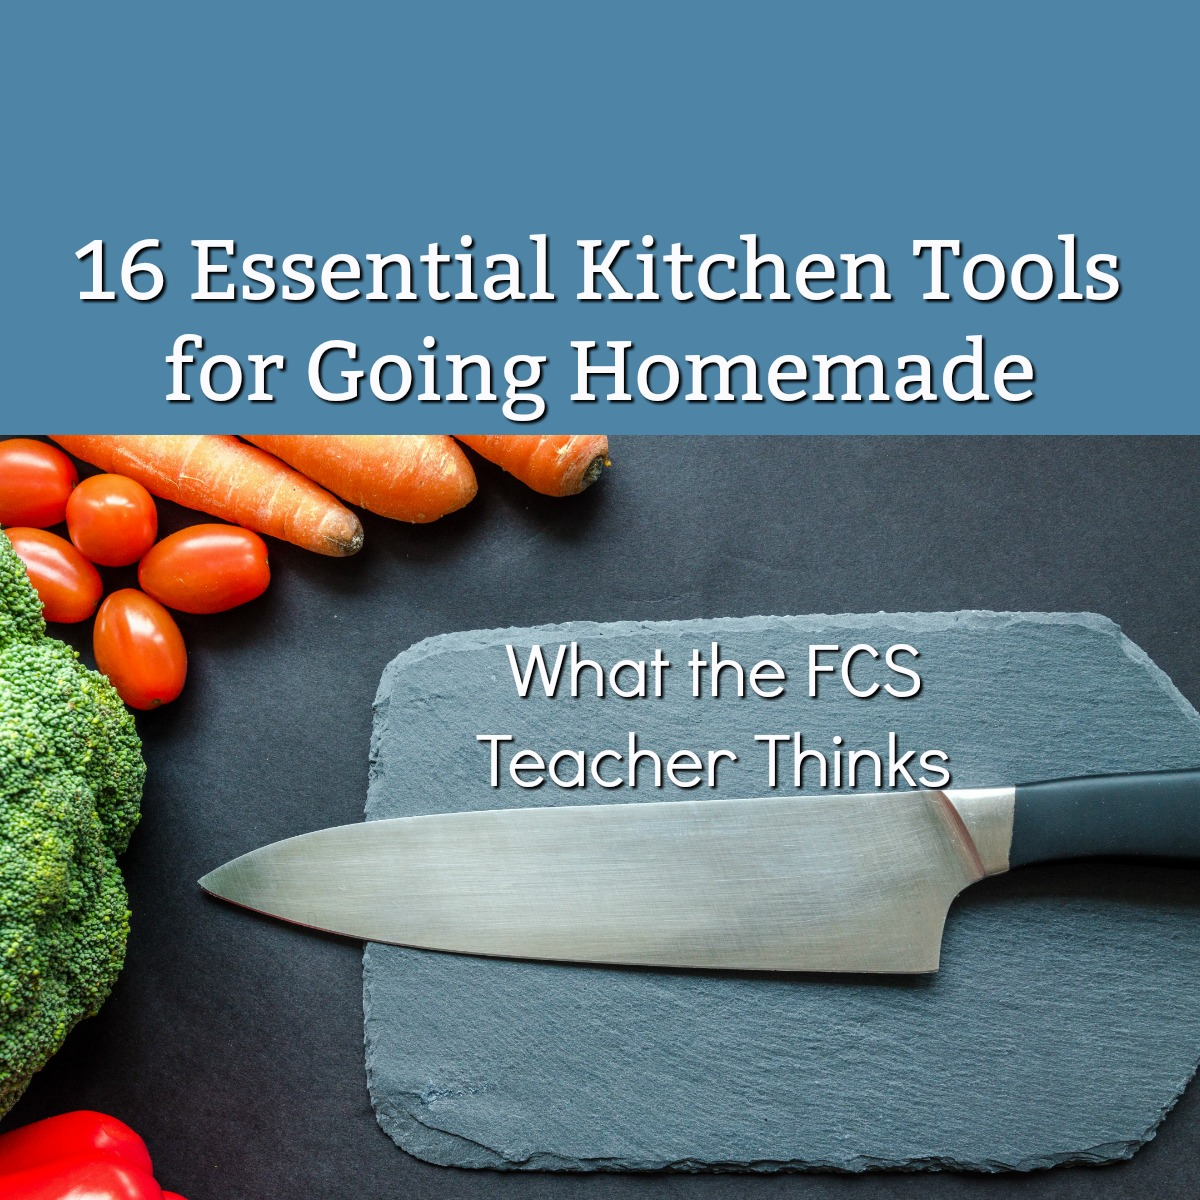 16 Essential Kitchen Tools for Going Homemade: The Have-to-Haves ...